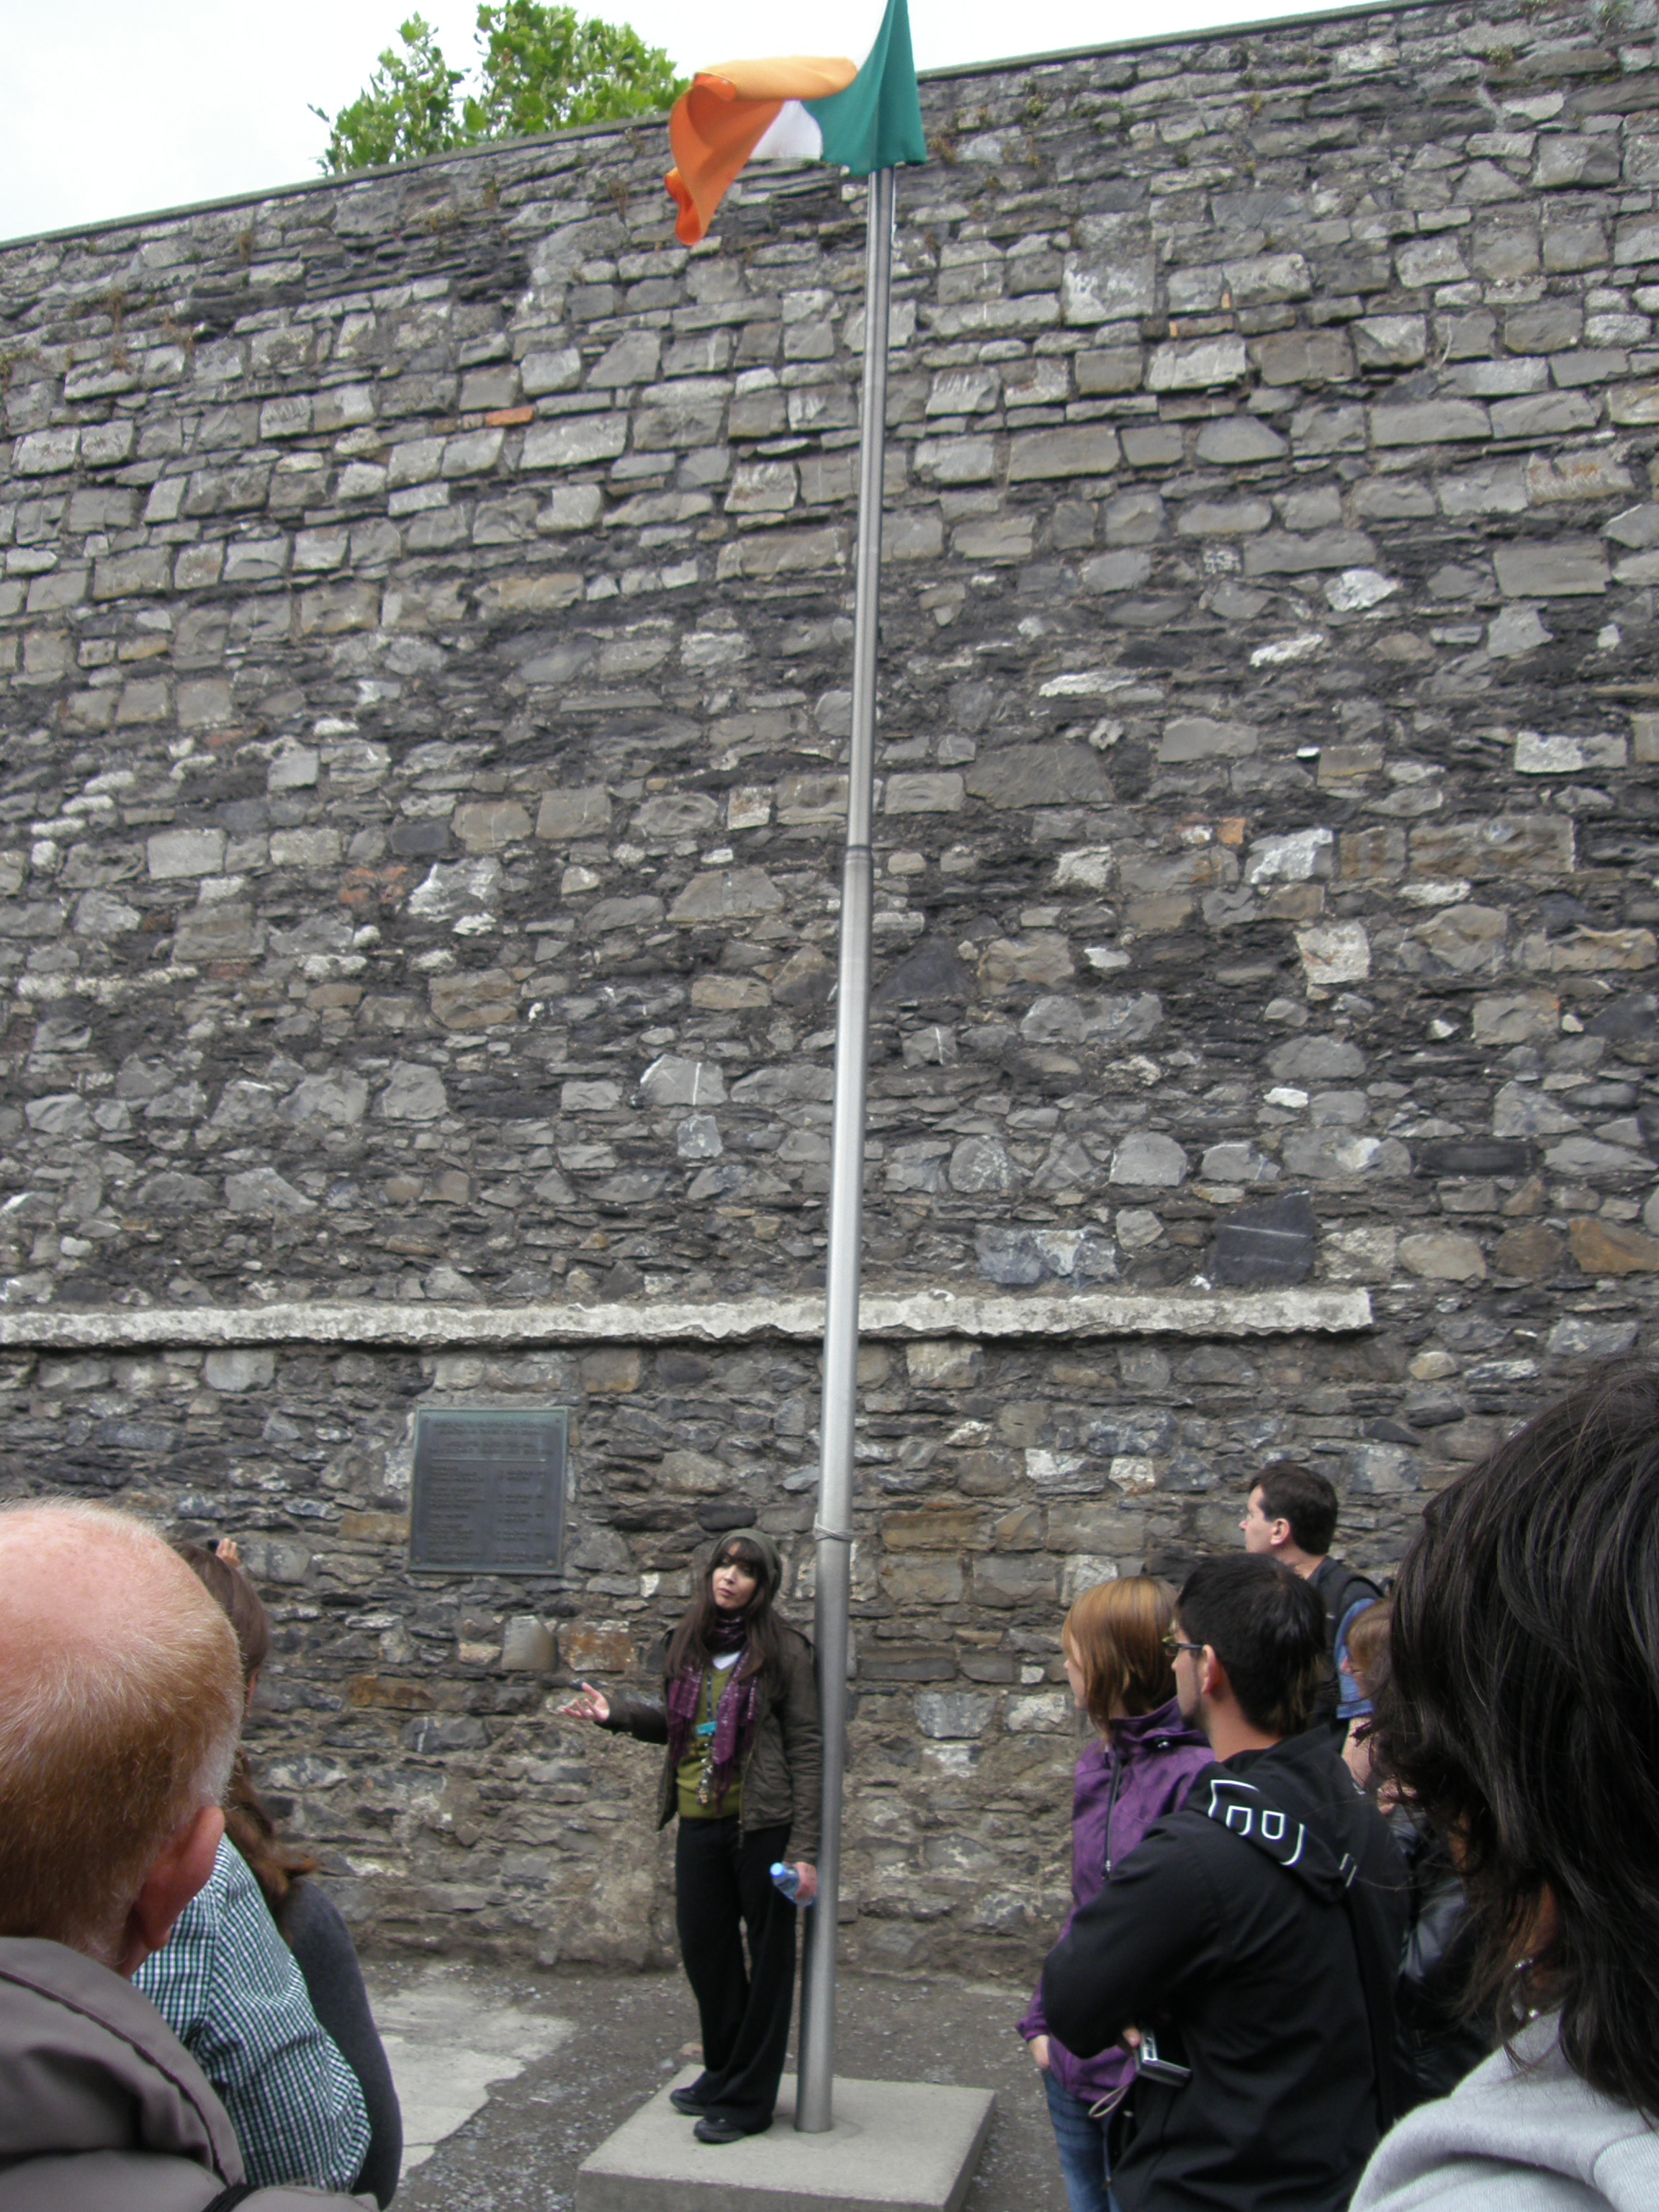 Stone Breakers' Yard at Kilmainham Gaol, Where Executions Were Carried Out